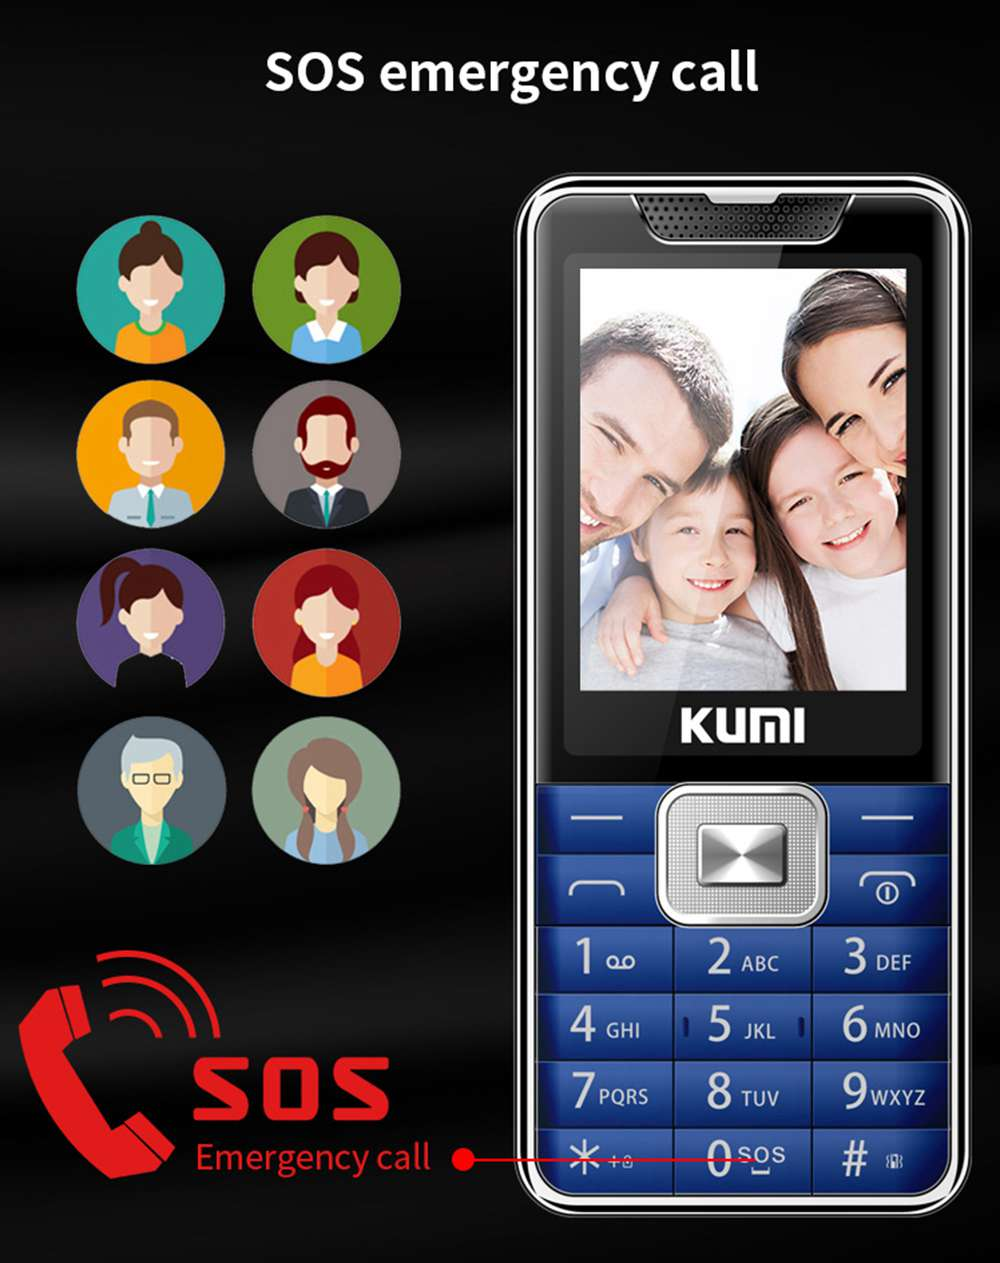 KUMI Mi1 English Version Function Phone 2.4 Inch TFT Screen 32MB RAM 32MB ROM 1700mAh Battery Dual SIM Dual Standby One Key SOS With Infrared Thermometer - Black